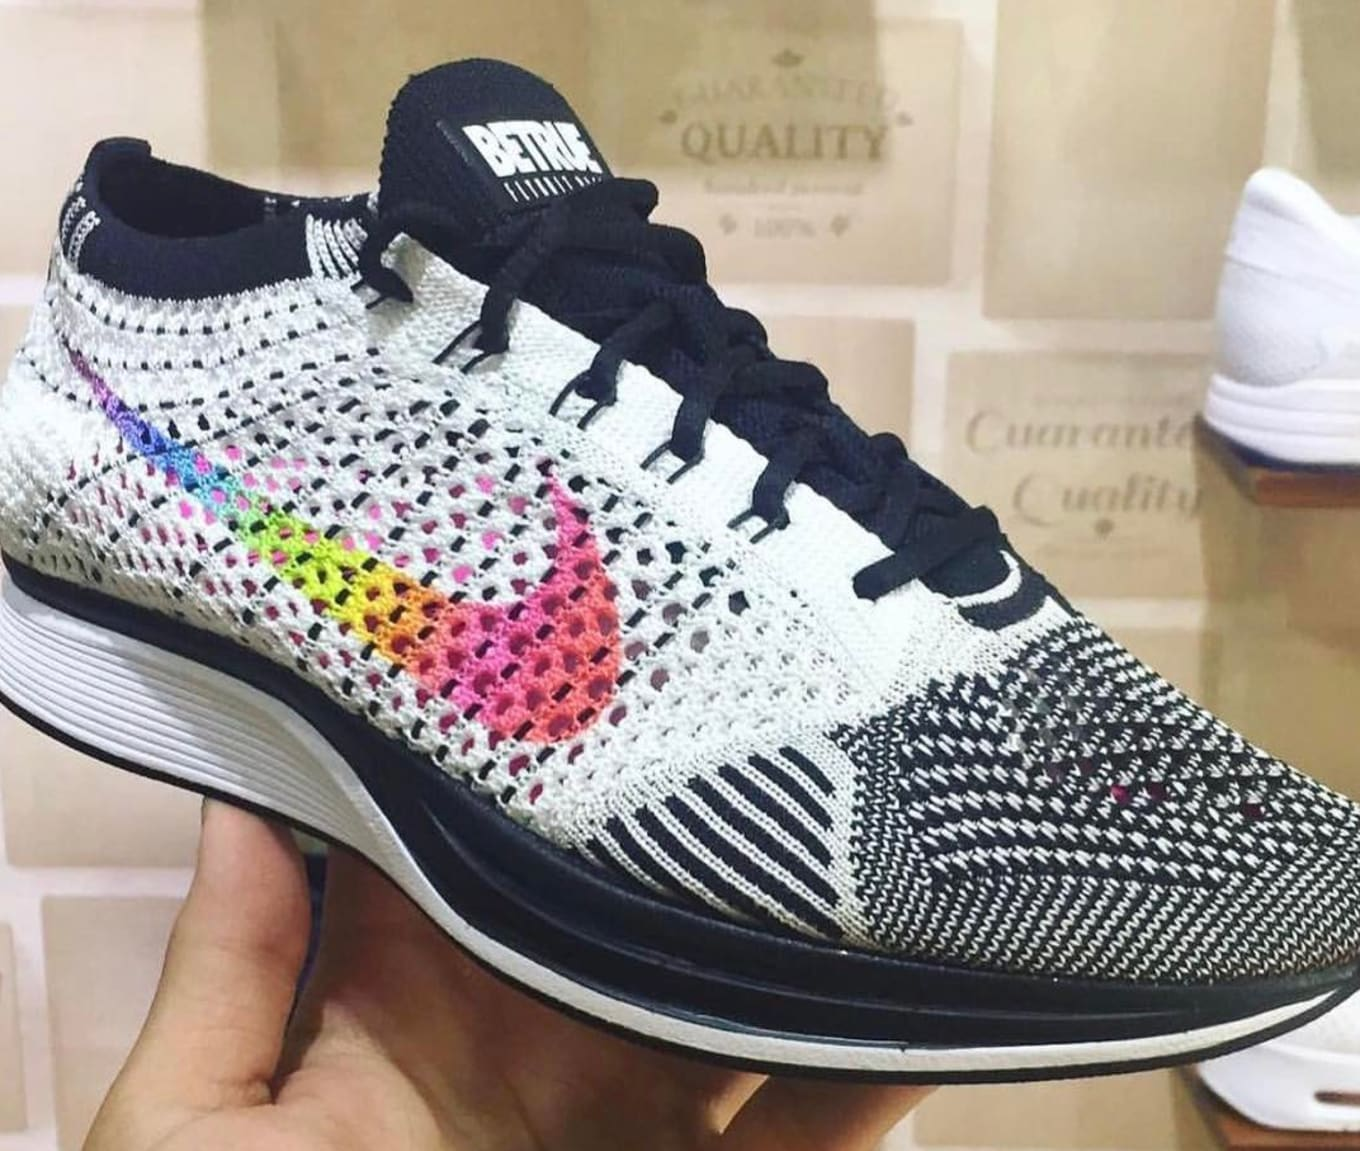 acb582b8e2116 First look at the  Be True  Flyknit Racers.